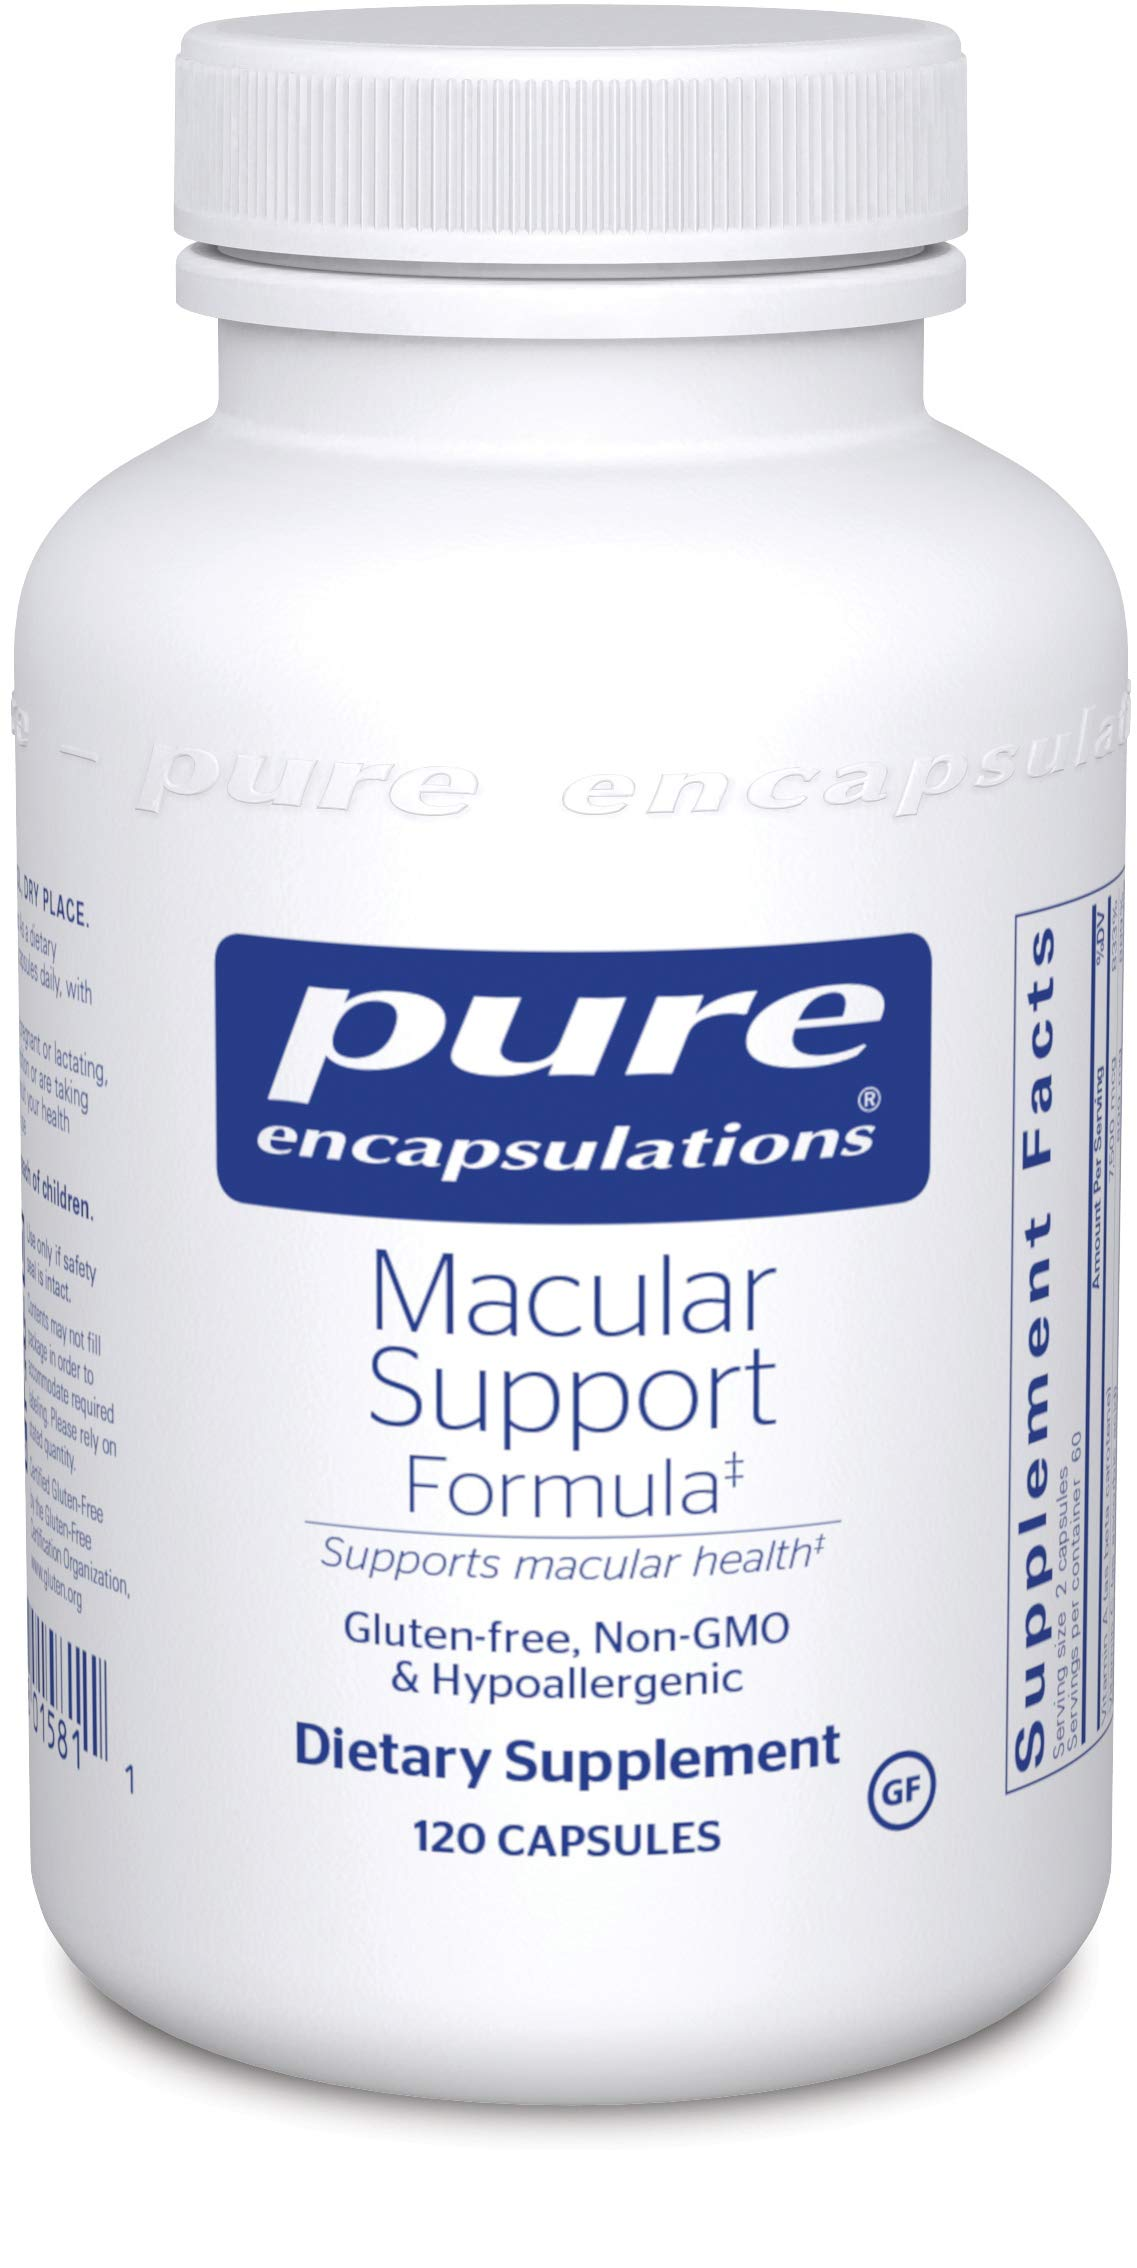 Pure Encapsulations - Macular Support Formula - Hypoallergenic Supplement with Enhanced Antioxidant Formula for Healthy Eyes* - 120 Capsules